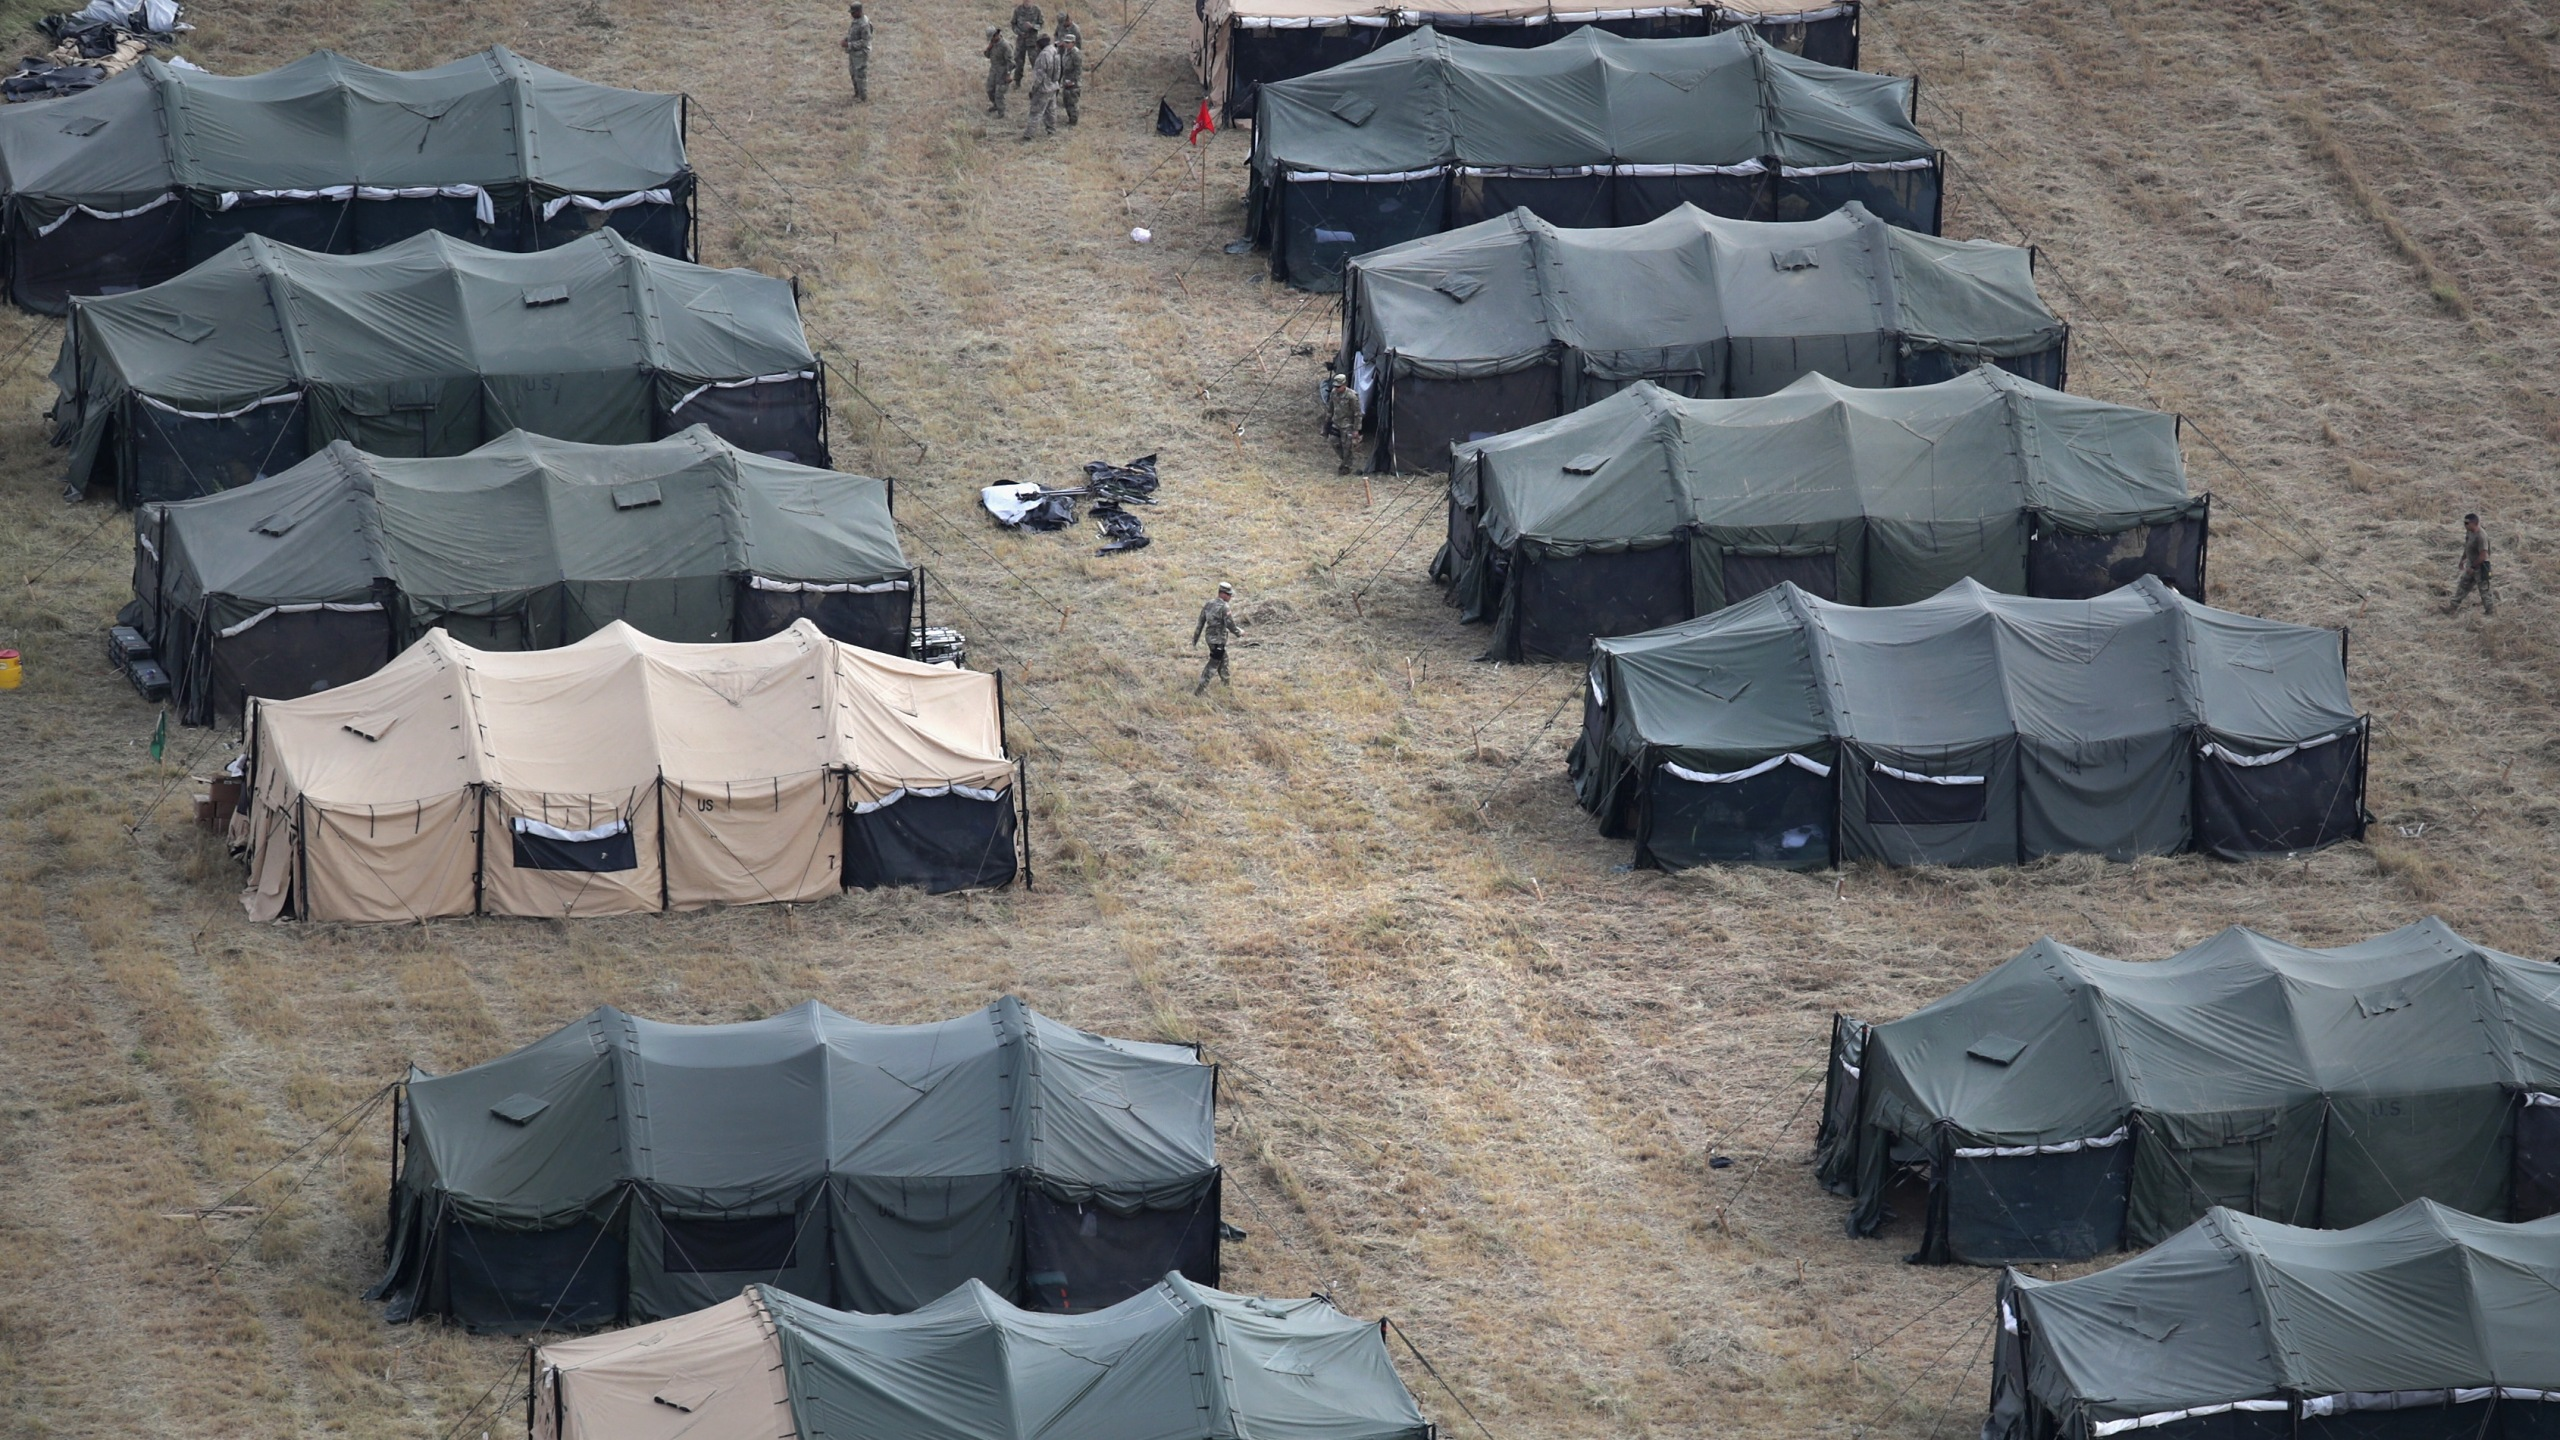 U.S. Army tents stand at a new military camp under construction at the U.S.-Mexico border on Nov. 7, 2018, in Donna, Texas. (Credit: John Moore/Getty Images)